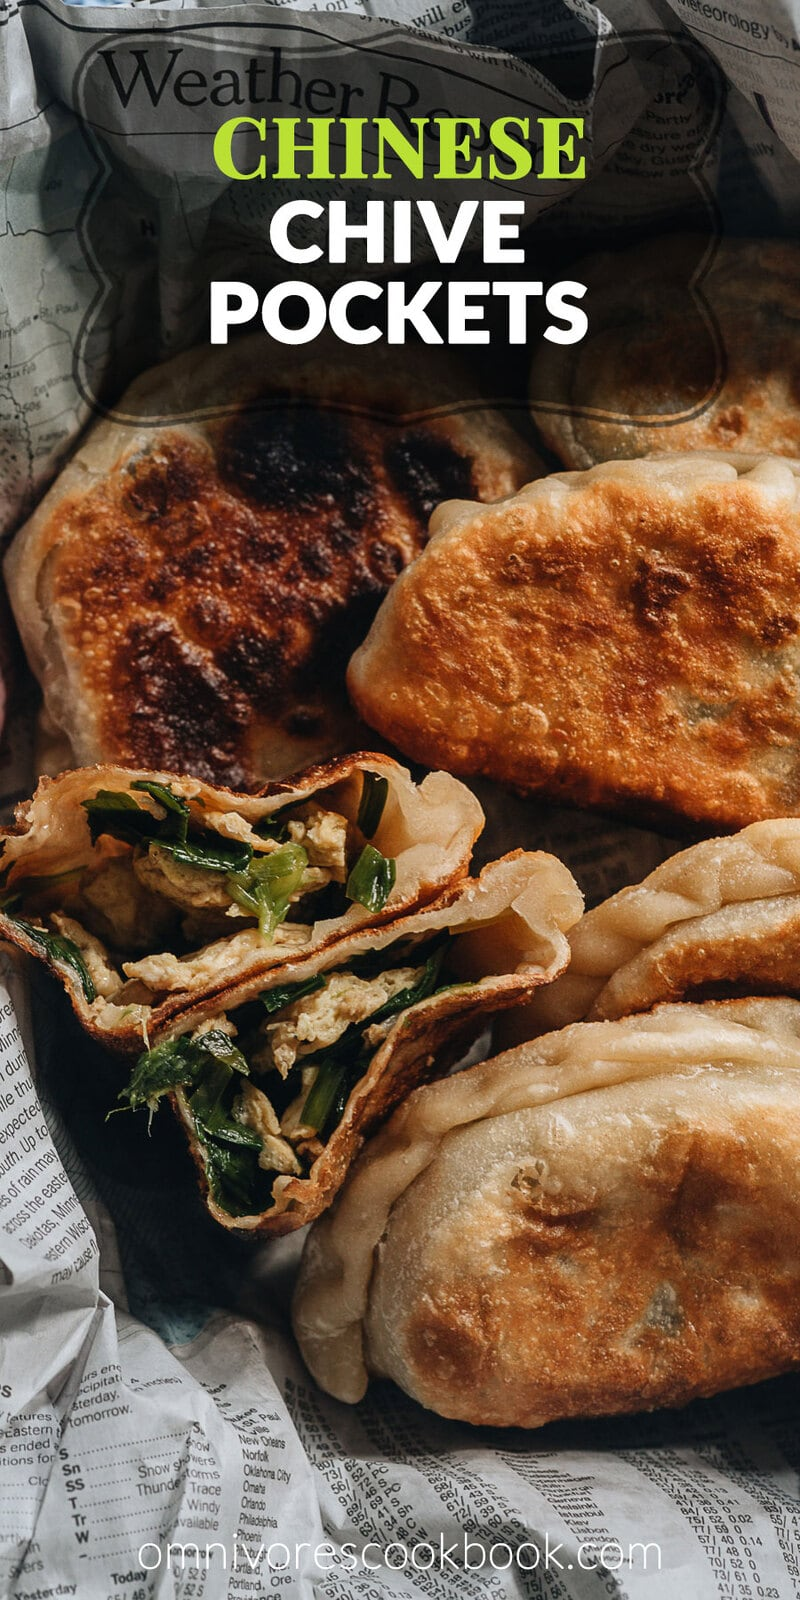 Chinese Chive Pockets (韭菜盒子, Chinese Chive Dumplings) | The super crispy and thin dough is stuffed with a hearty, savory filling made with Chinese chives and scrambled eggs. They're easier to make than potstickers and have all the goodness that dumplings have, only more satisfying!